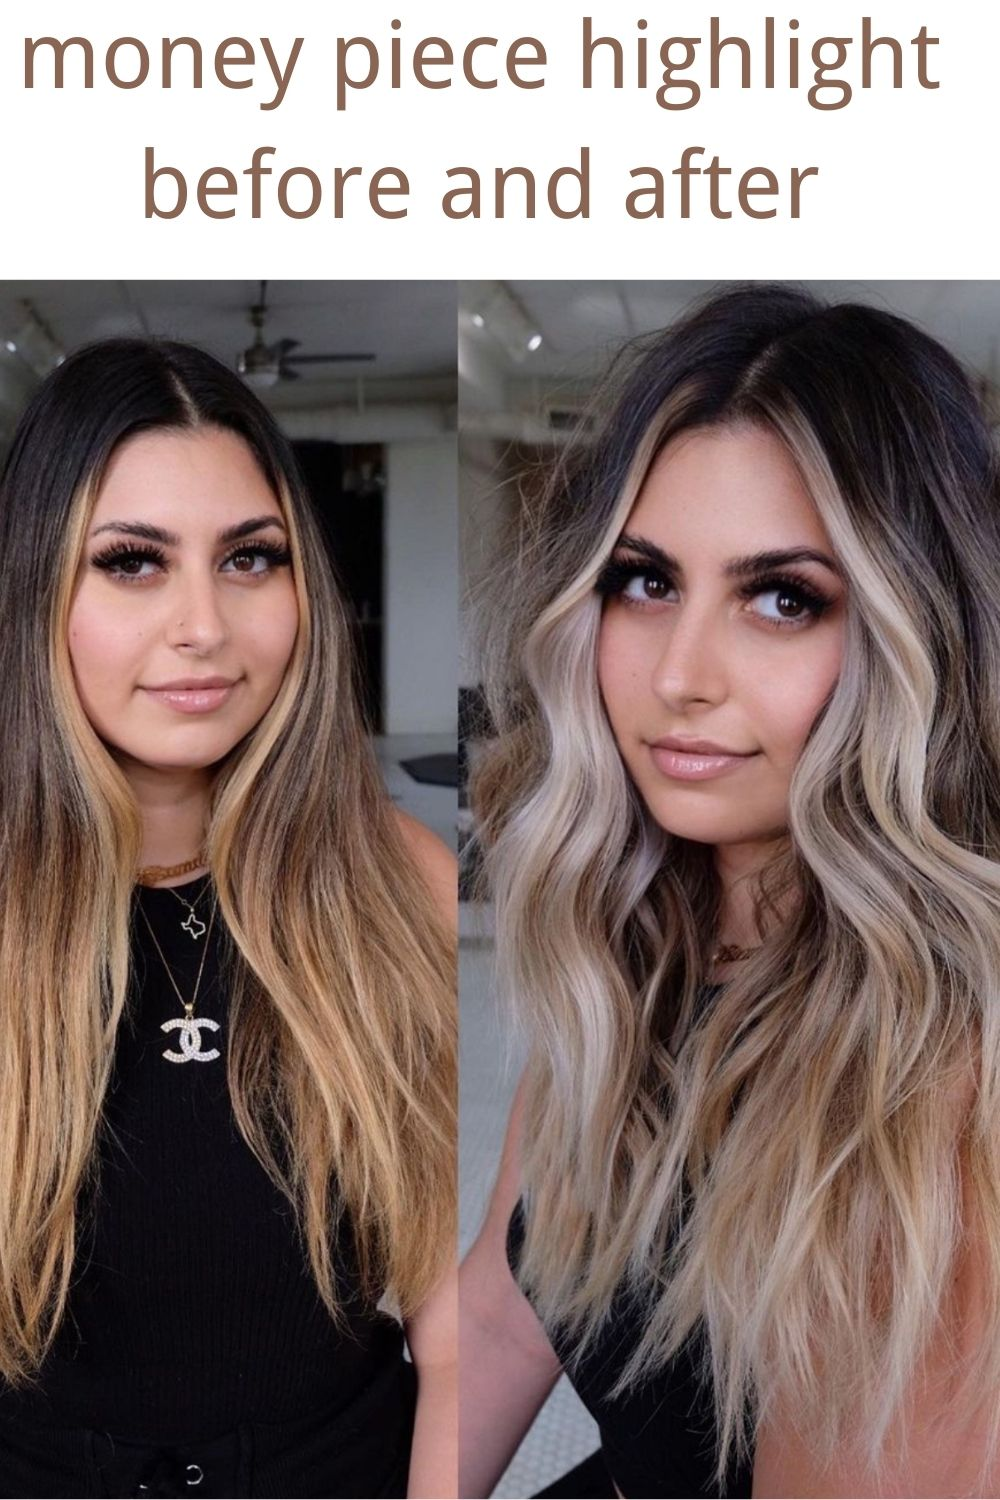 Alluring Money Piece Hair Highlights for a Face-Framing Hair Trend